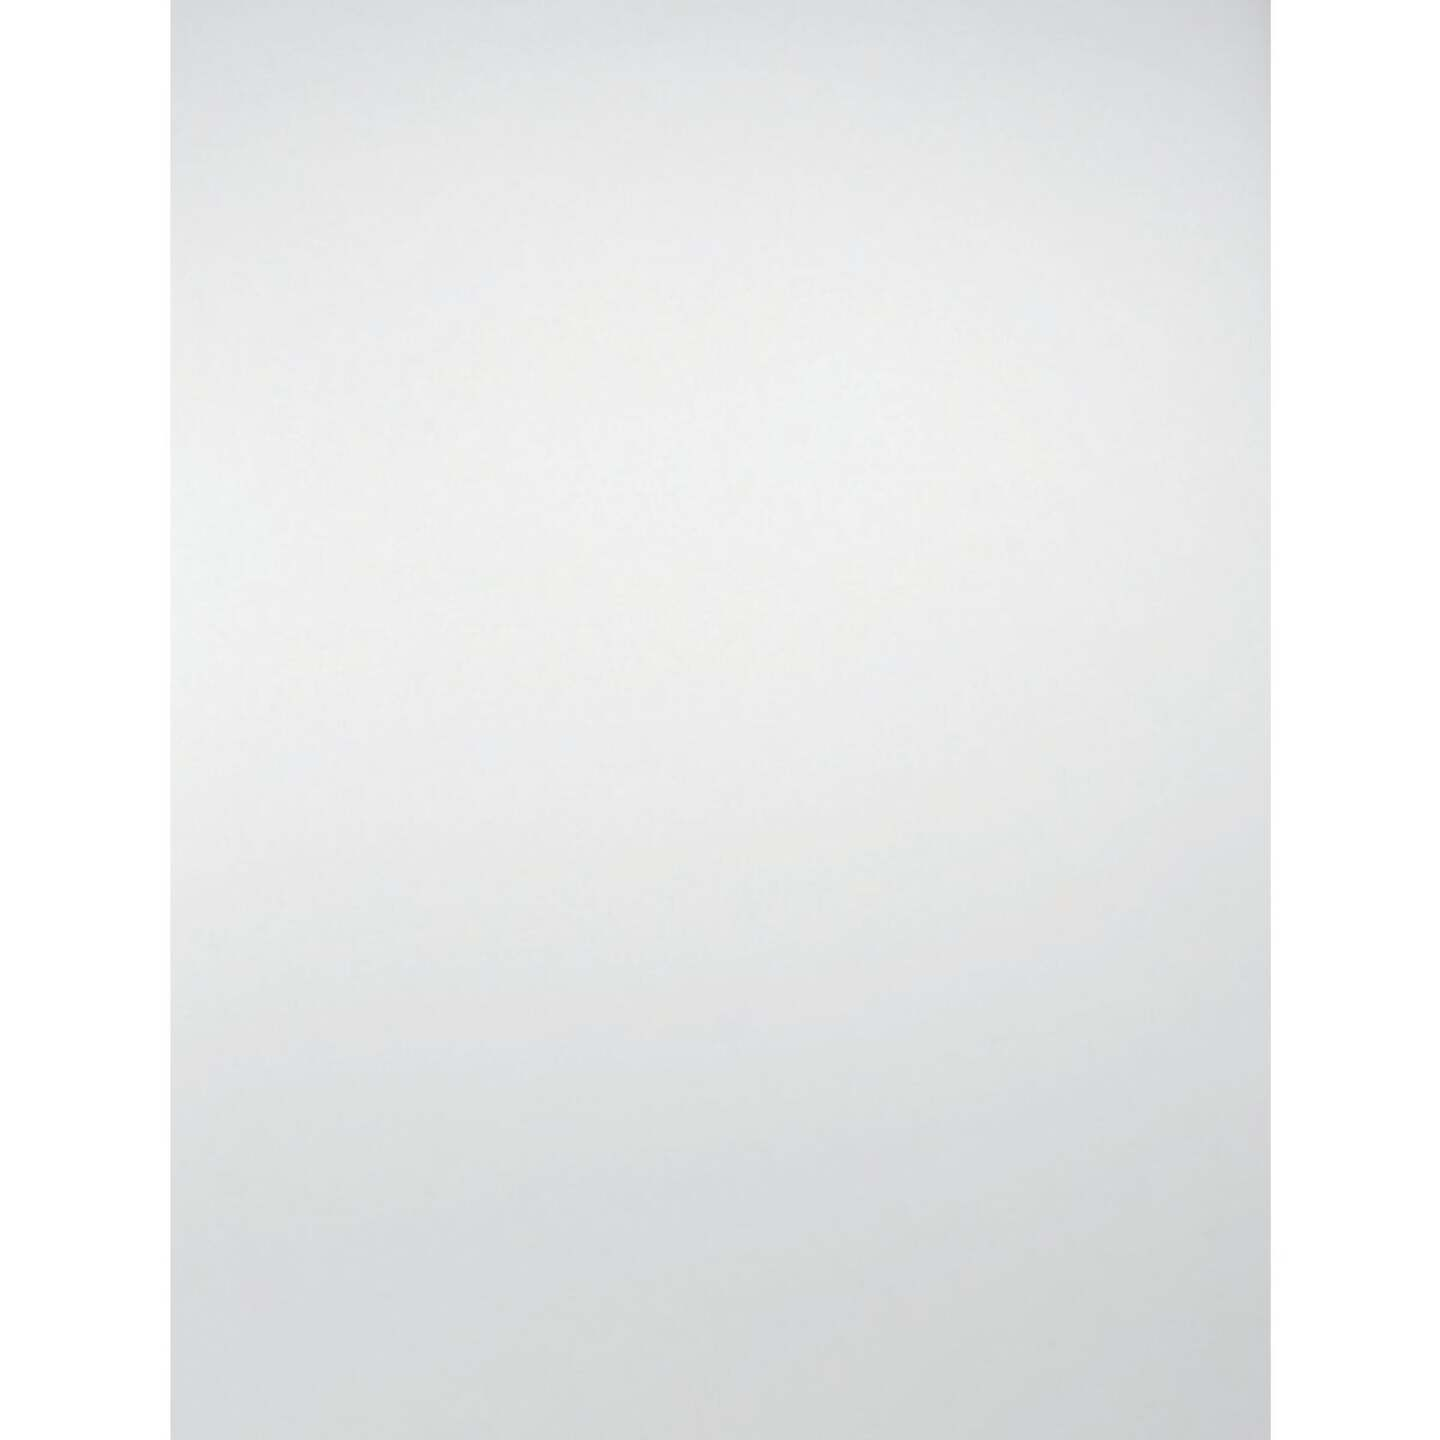 Erias Home Design 30 In. W. x 36 In. H. Frameless Polished Edge Wall Mirror Image 2